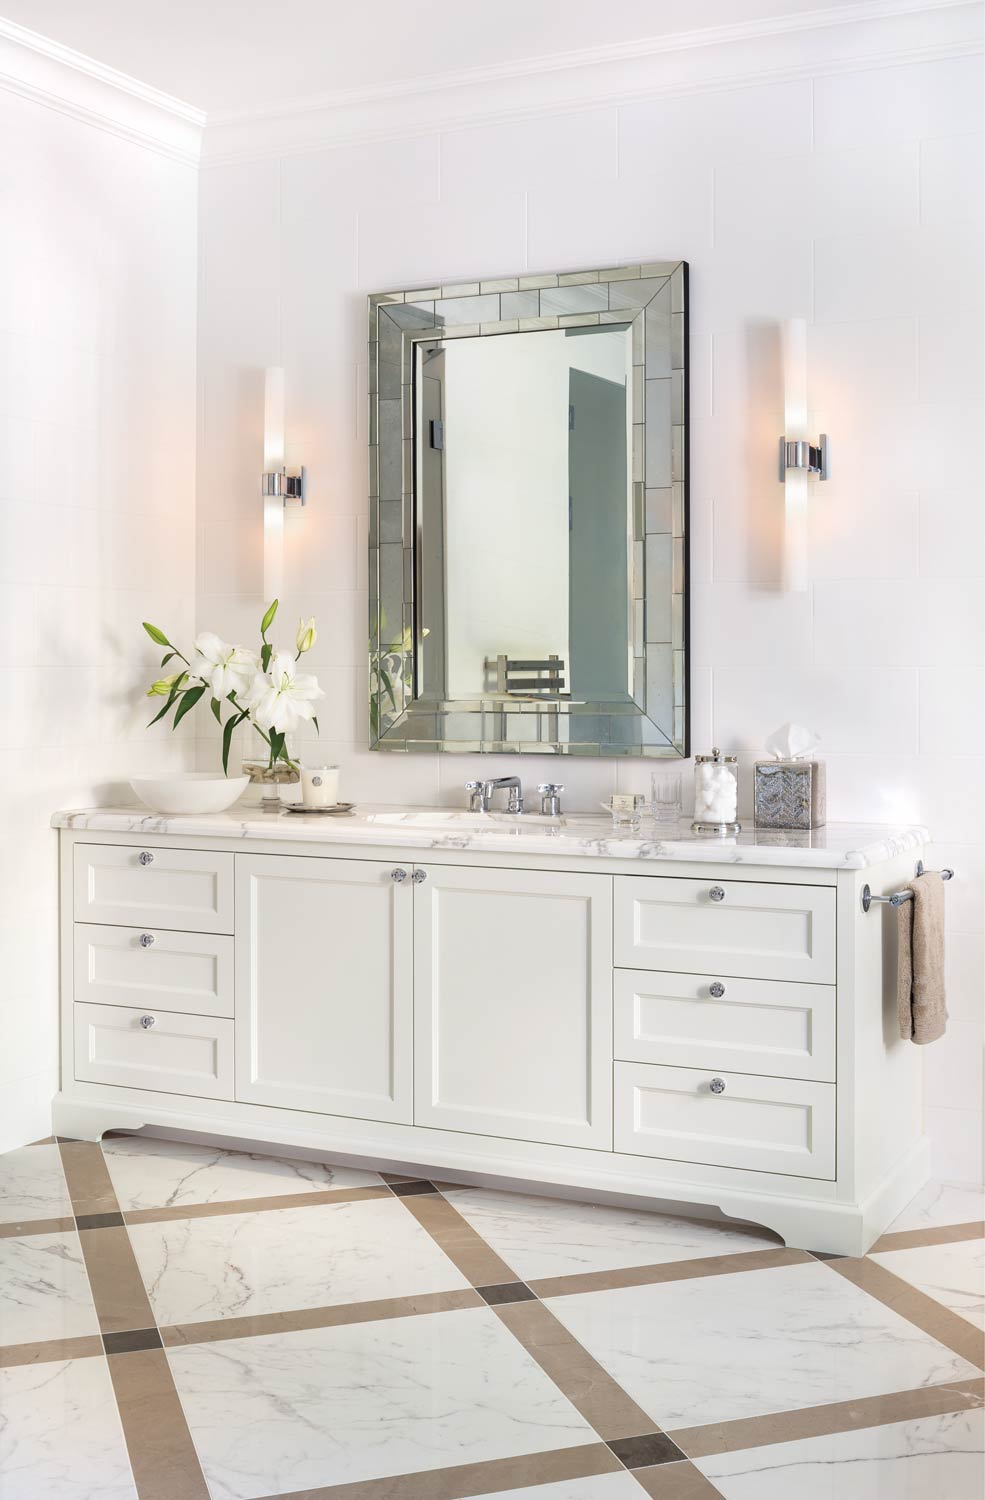 Over the vanity in the master bathroom is a faceted-border mirror.